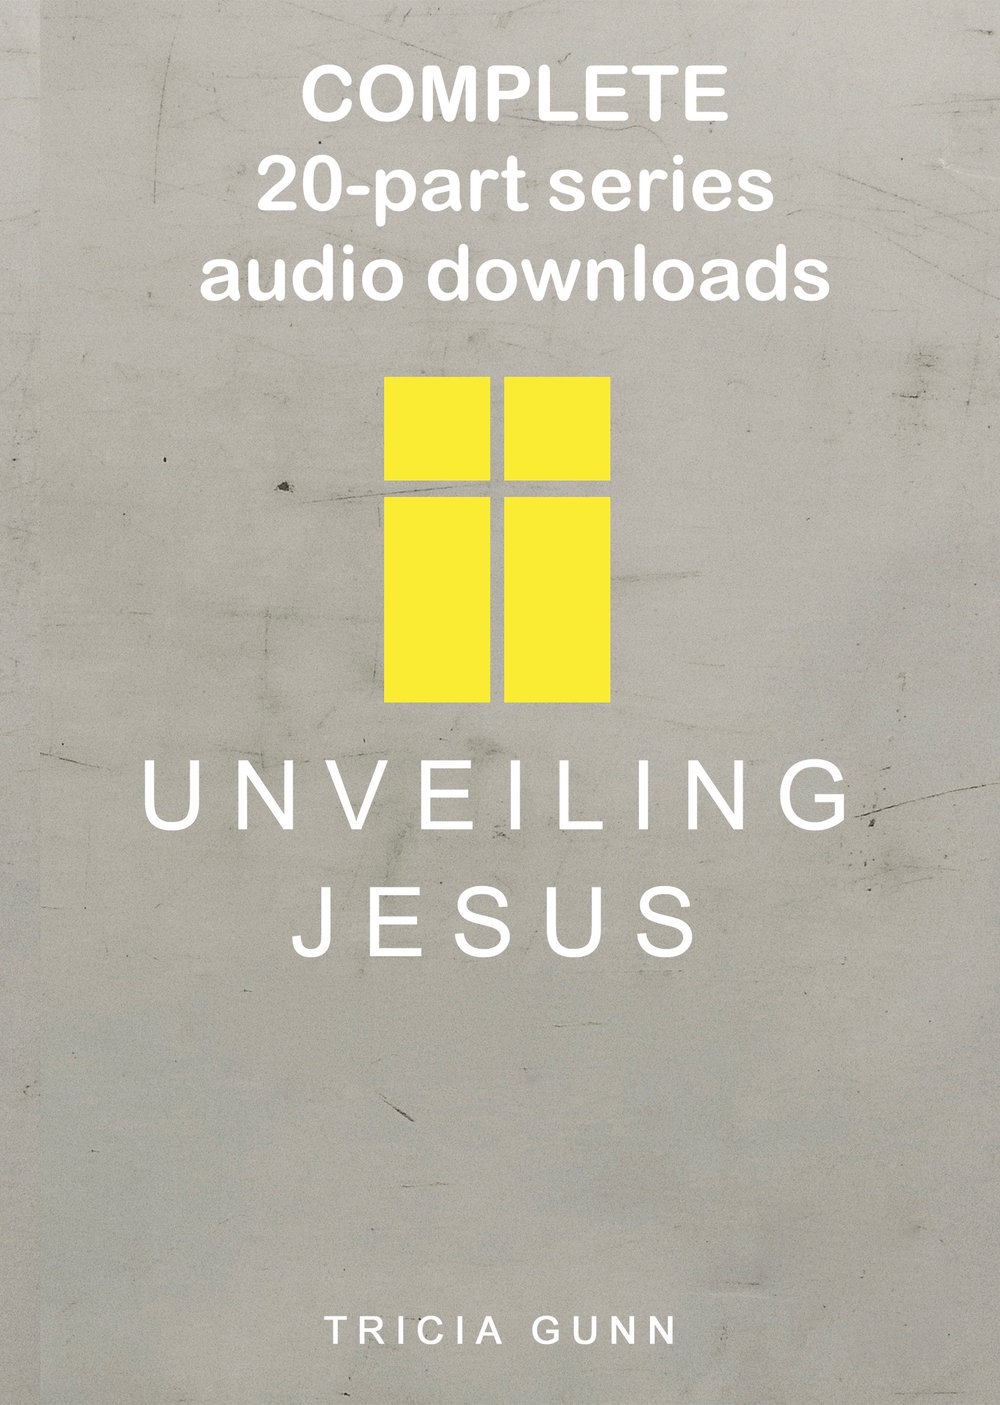 Purchase complete 20-part AUDIO series